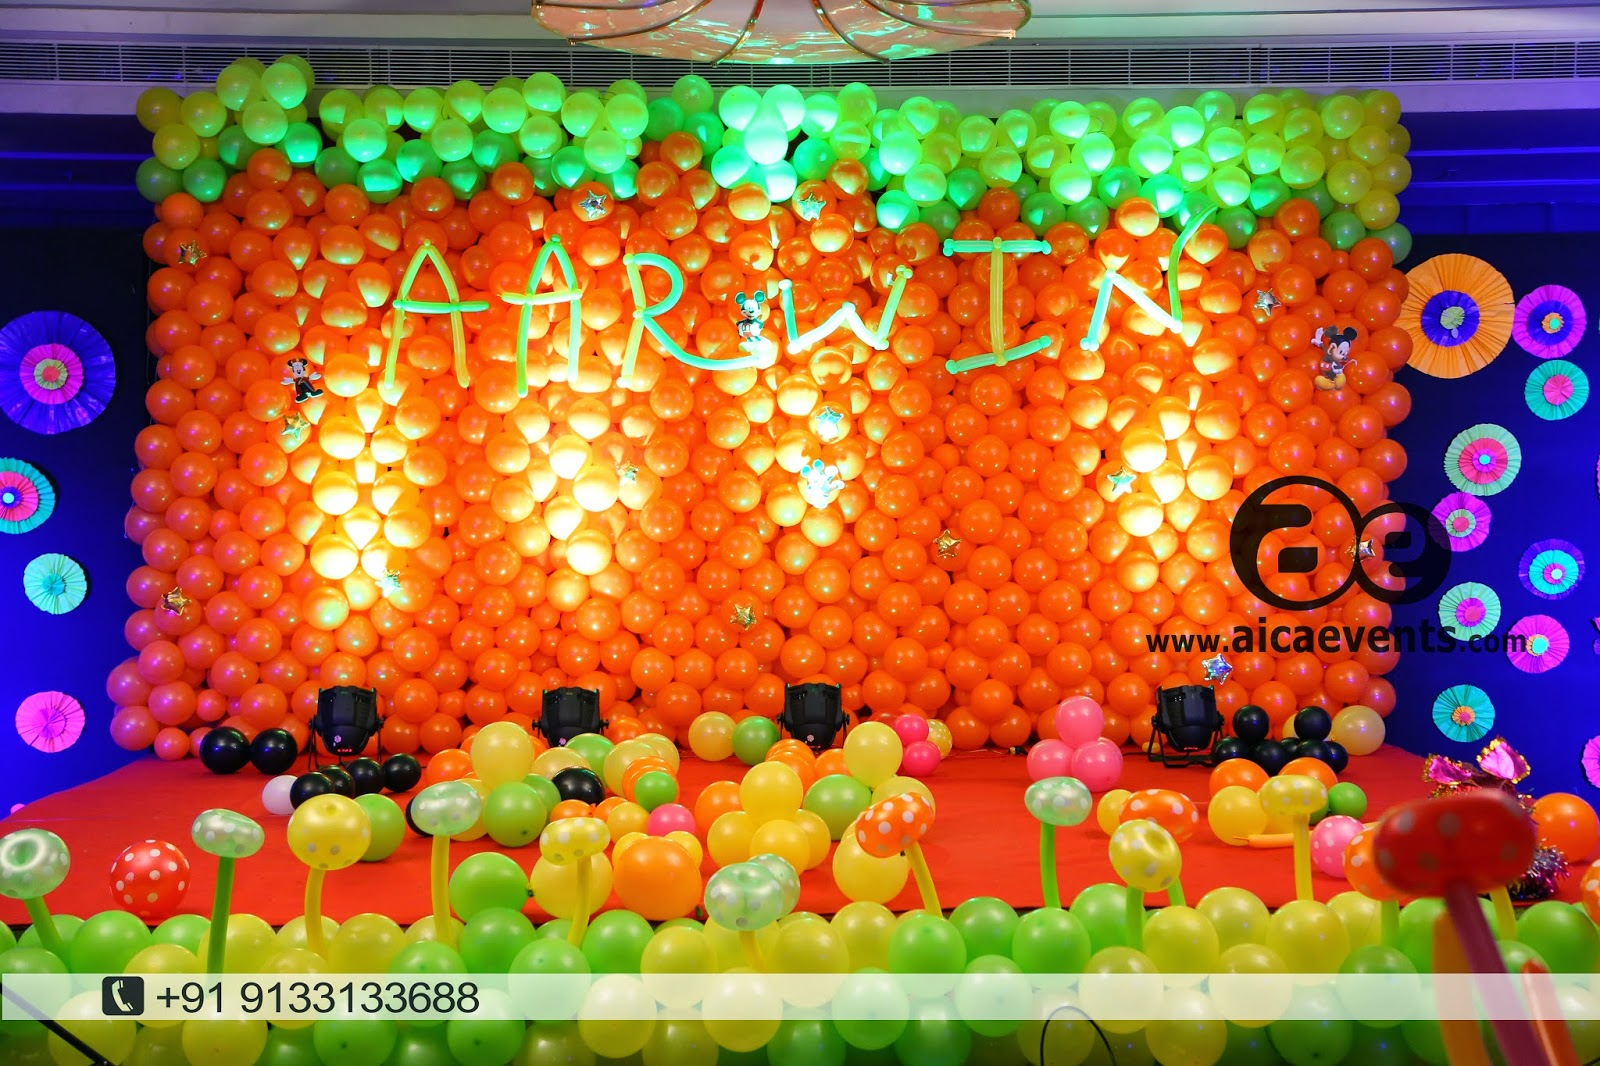 Aicaevents india balloon wall stage backdrop decoration balloon wall amipublicfo Image collections